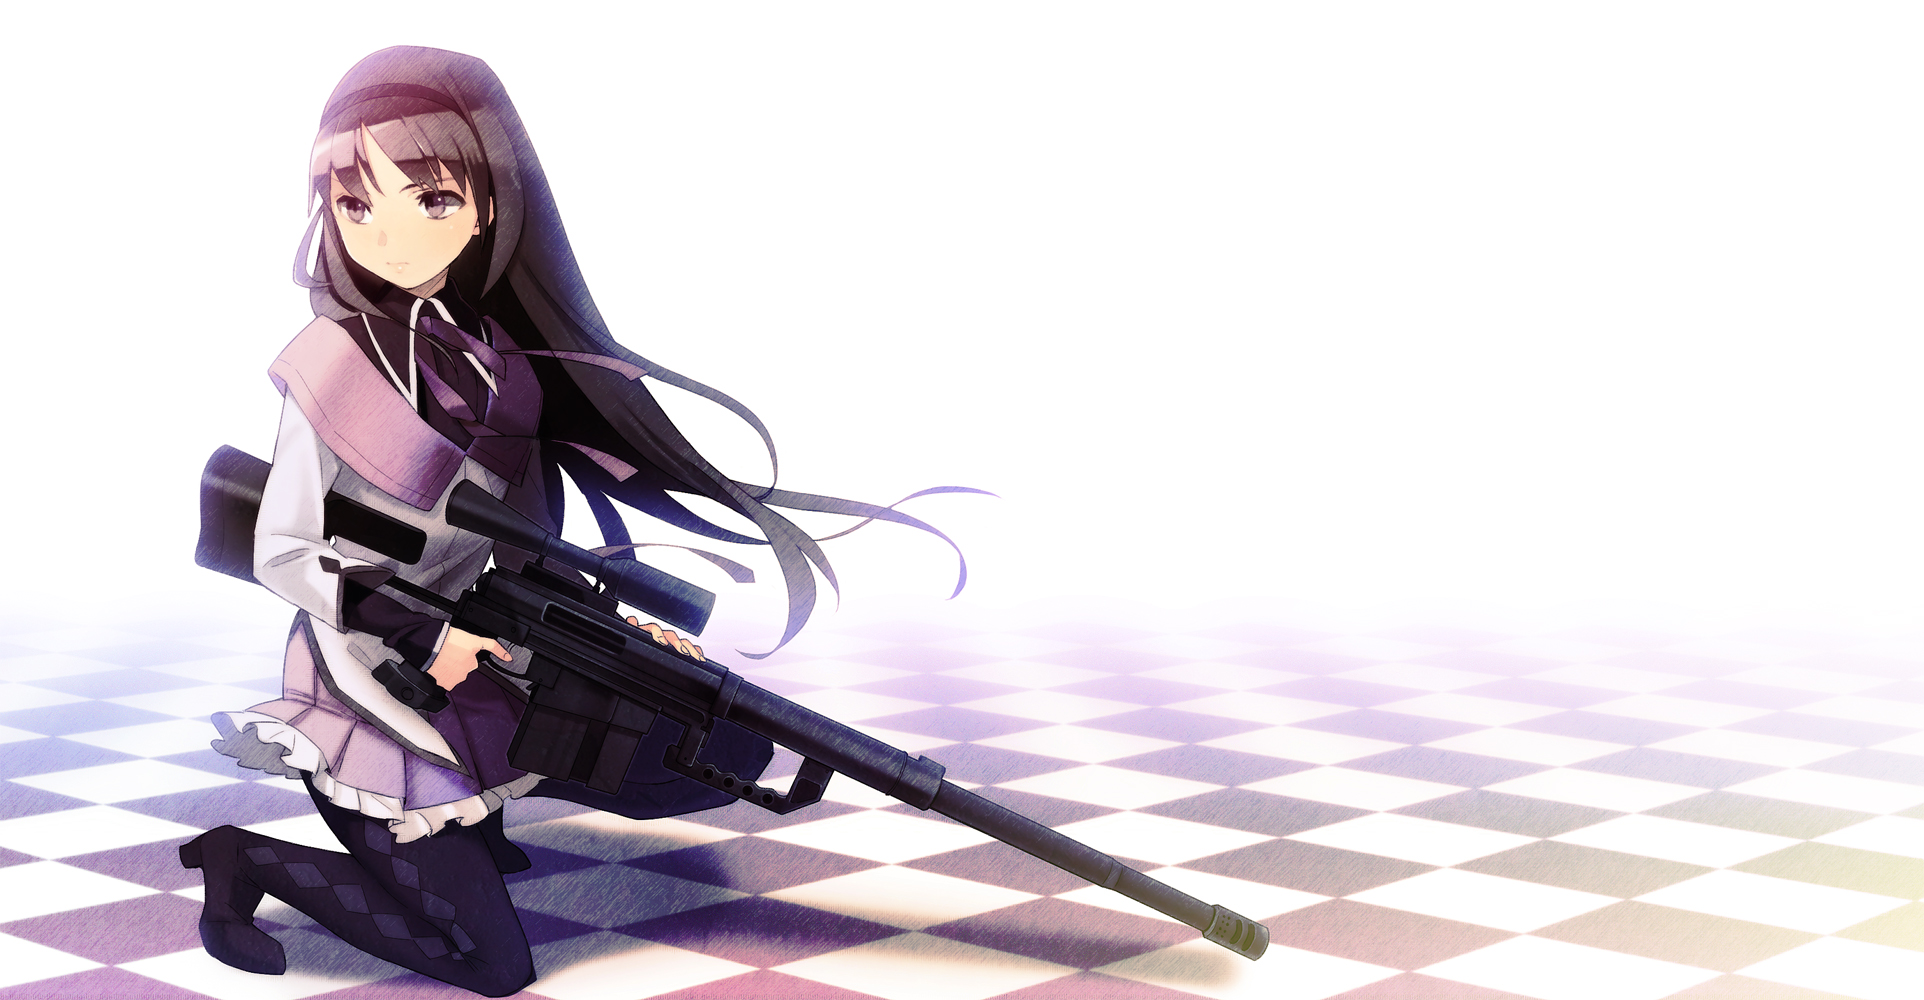 78 Best images about Anime Girls: guns on Pinterest | Rifles, Rail